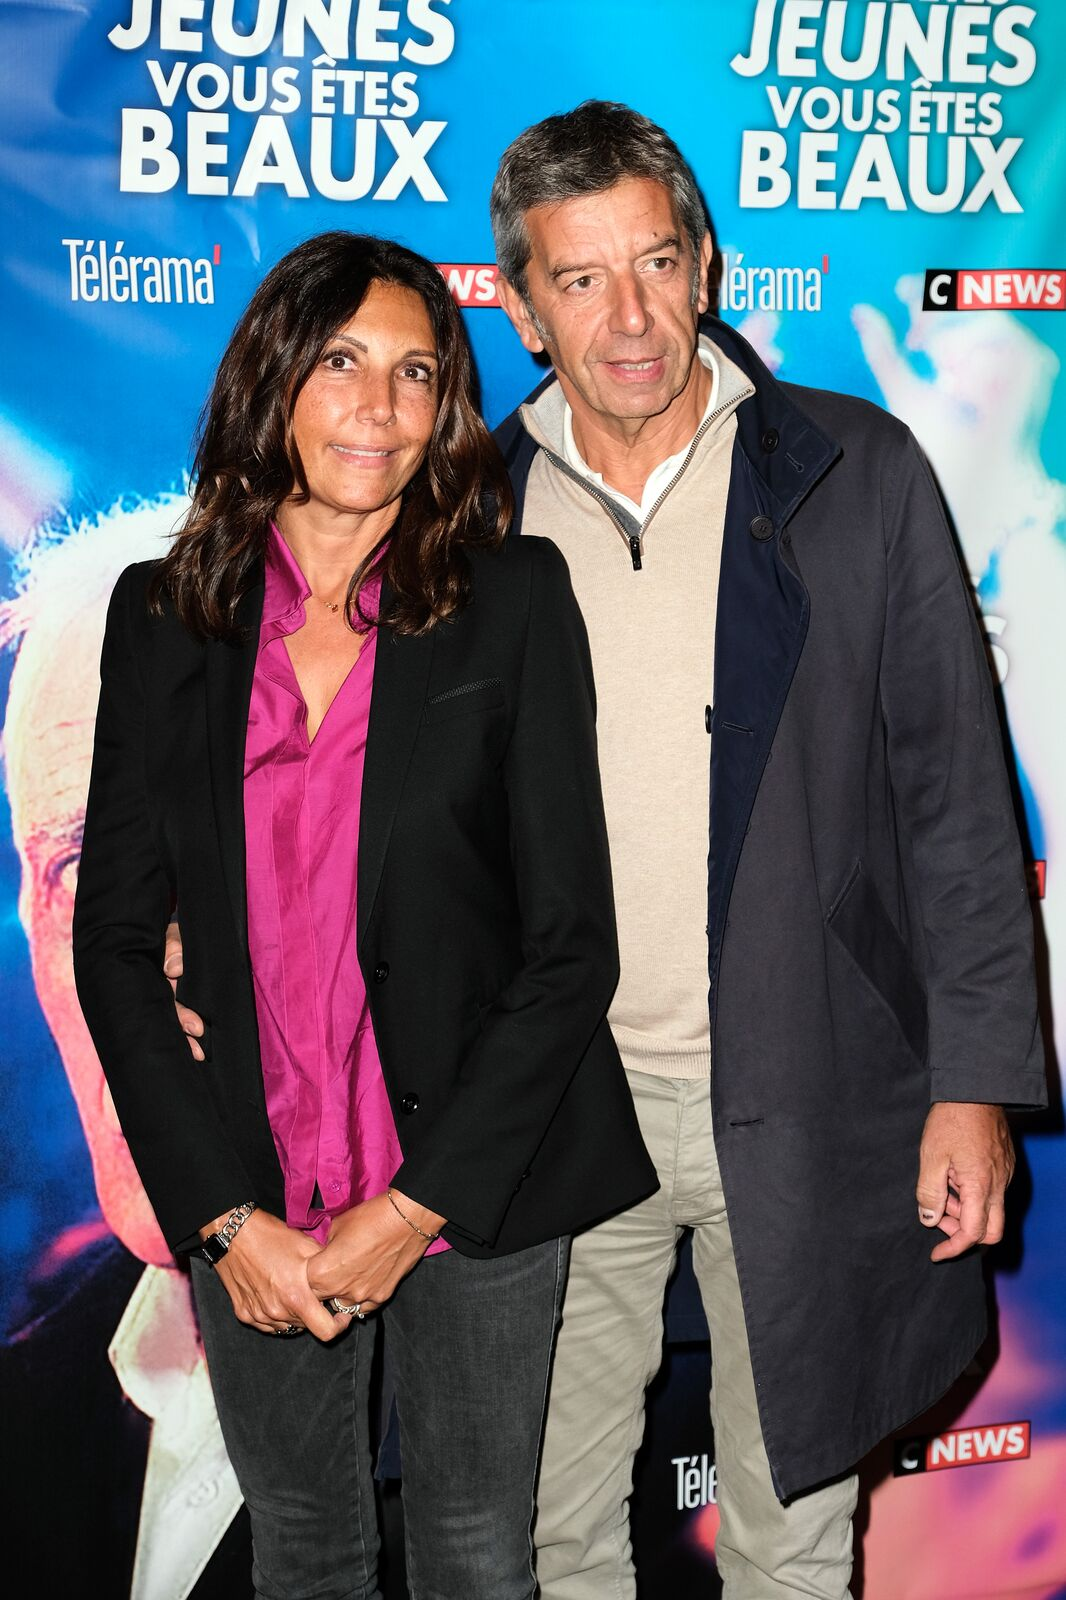 Michel Cymes et son épouse Nathalie Cymes le 23 septembre 2019 à Paris, France. | Photo : Getty Images.